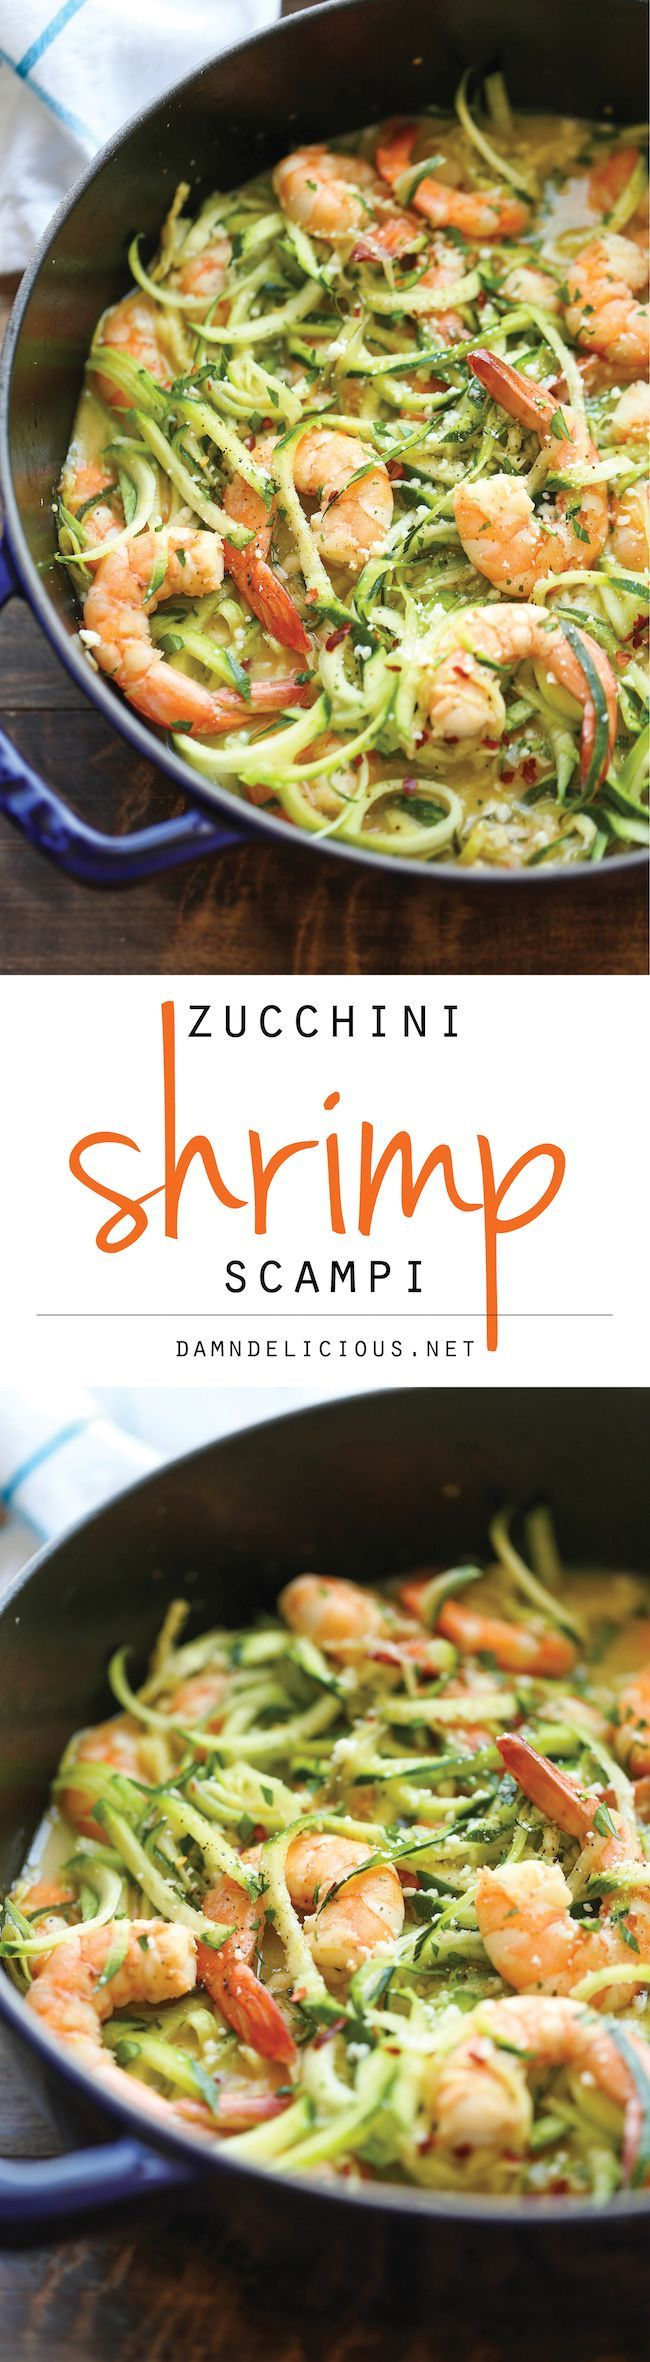 Zucchini Shrimp Scampi - Traditional shrimp scampi made into a low-carb dish with zucchini noodles. It's unbelievably easy, quick and healthy!